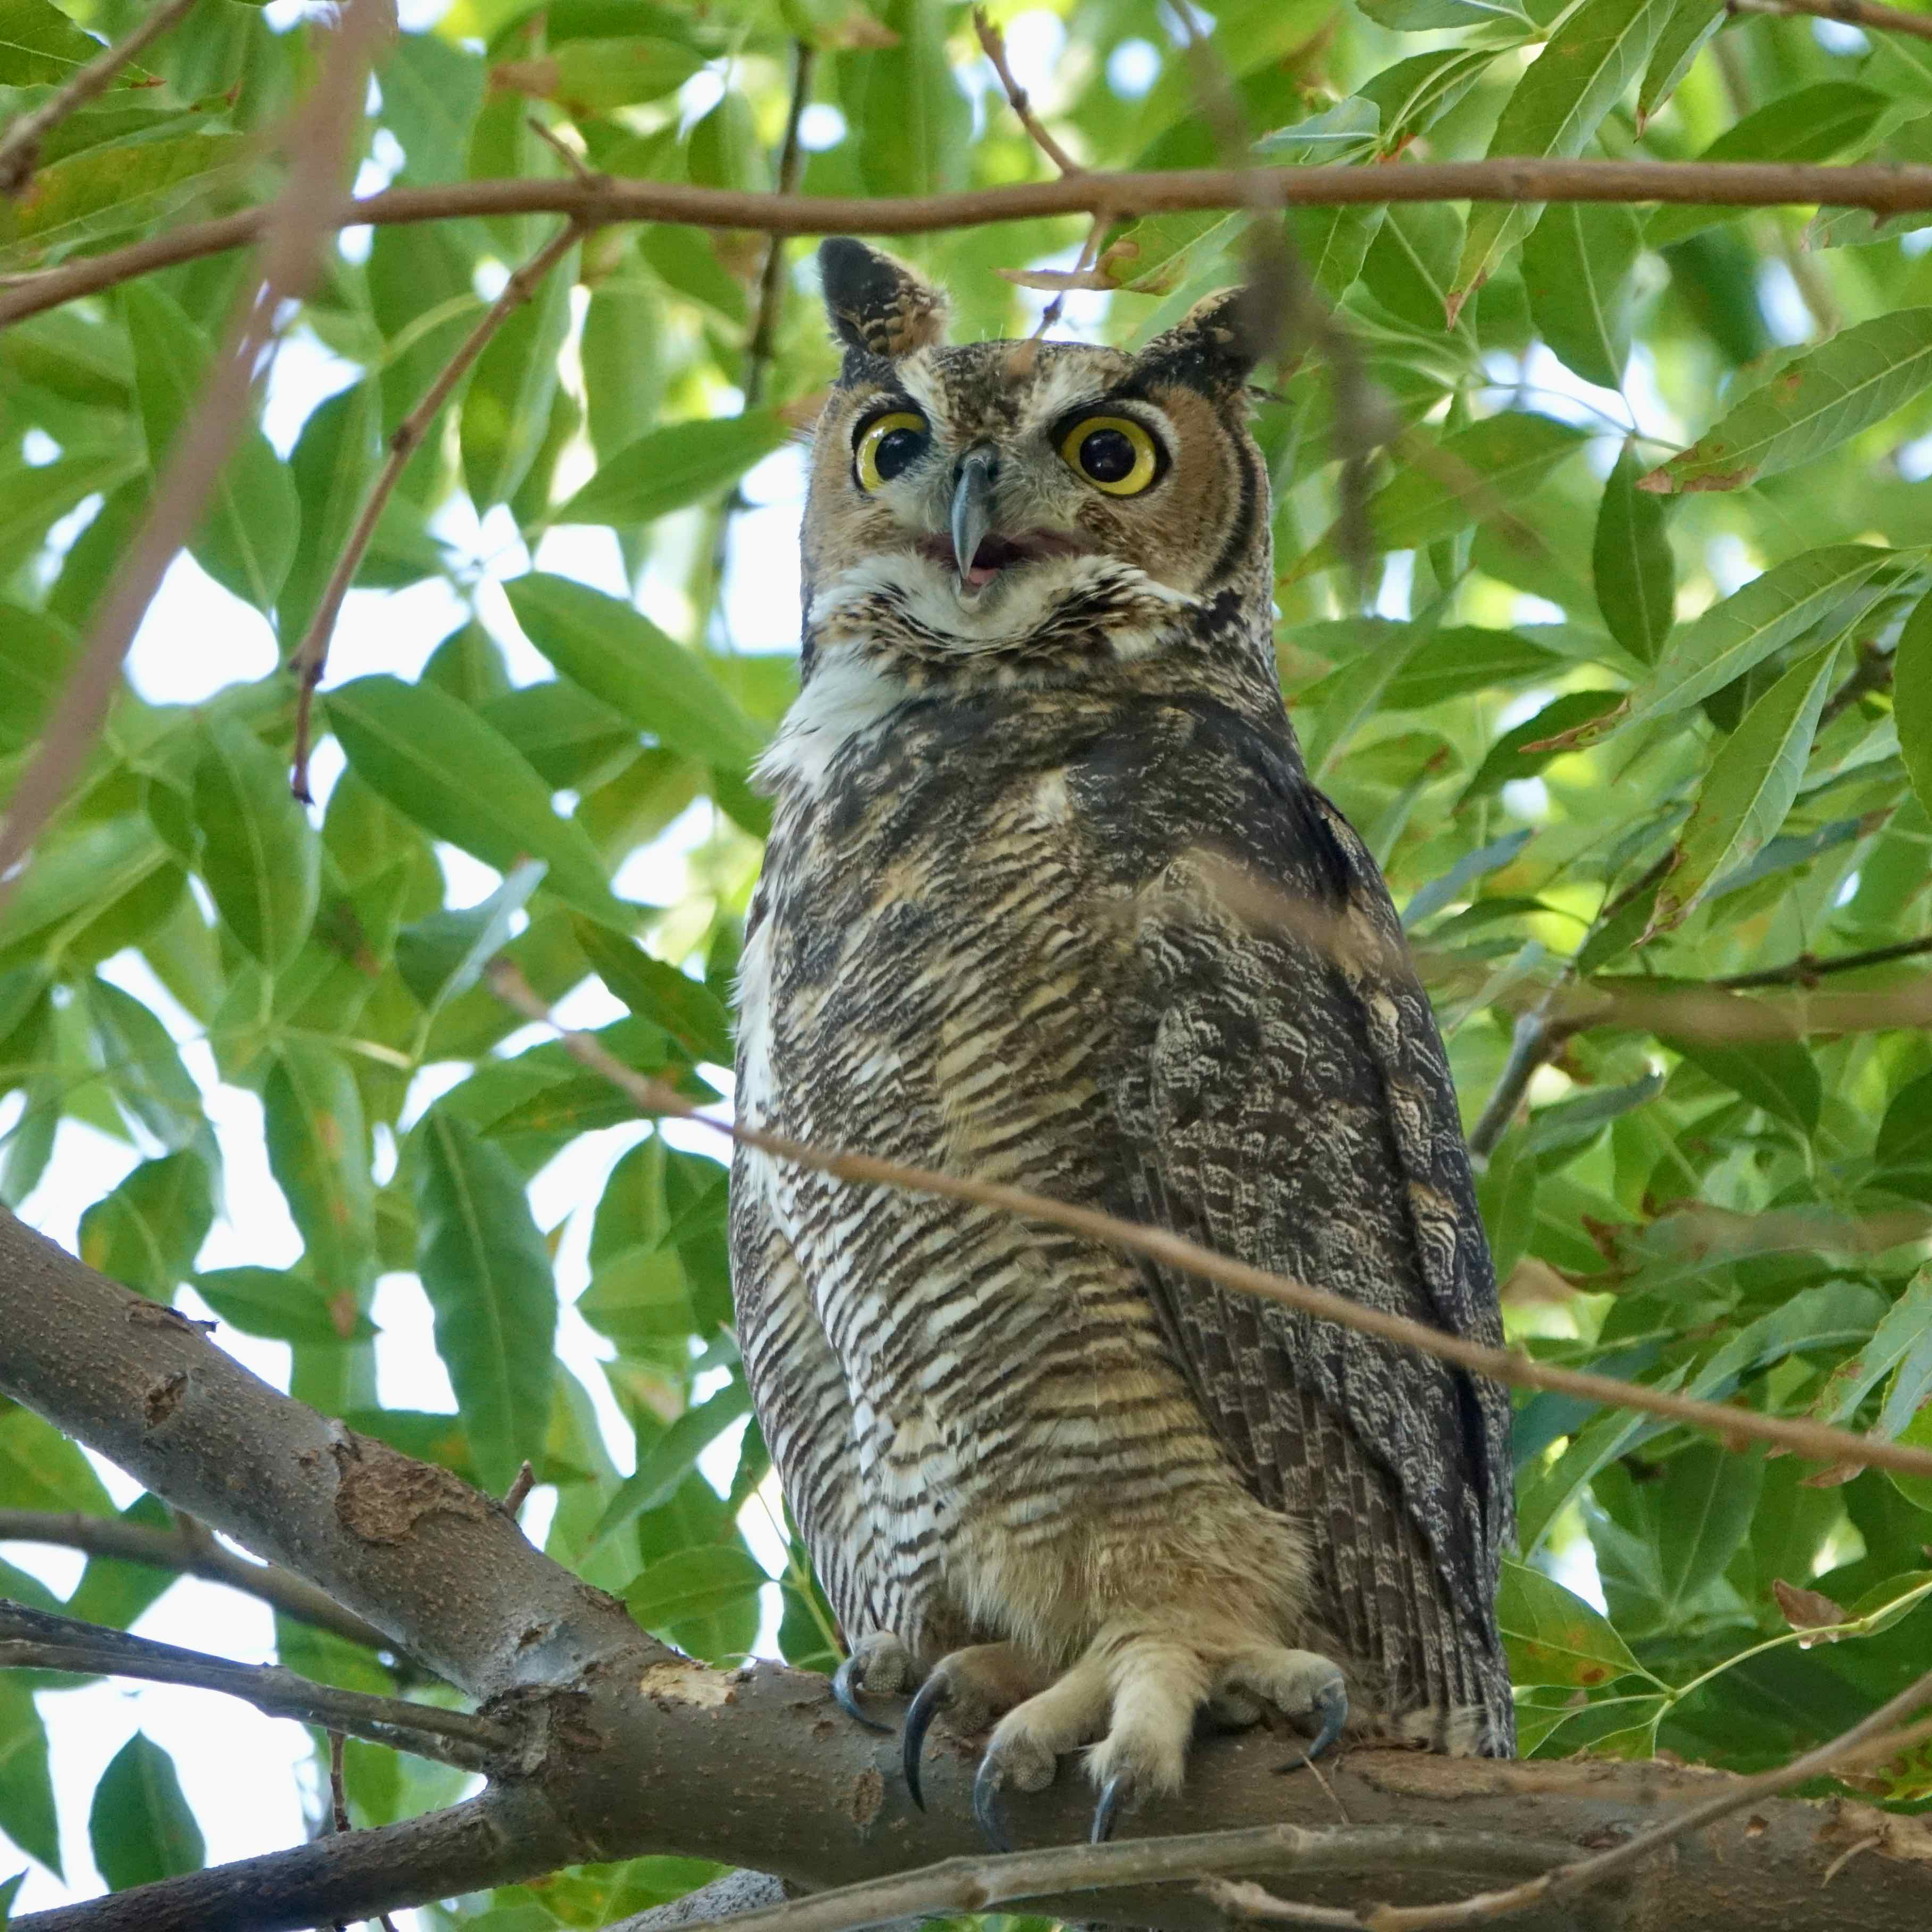 Great Horned Owl, North Hollywood. Photo by Karen Minkowski